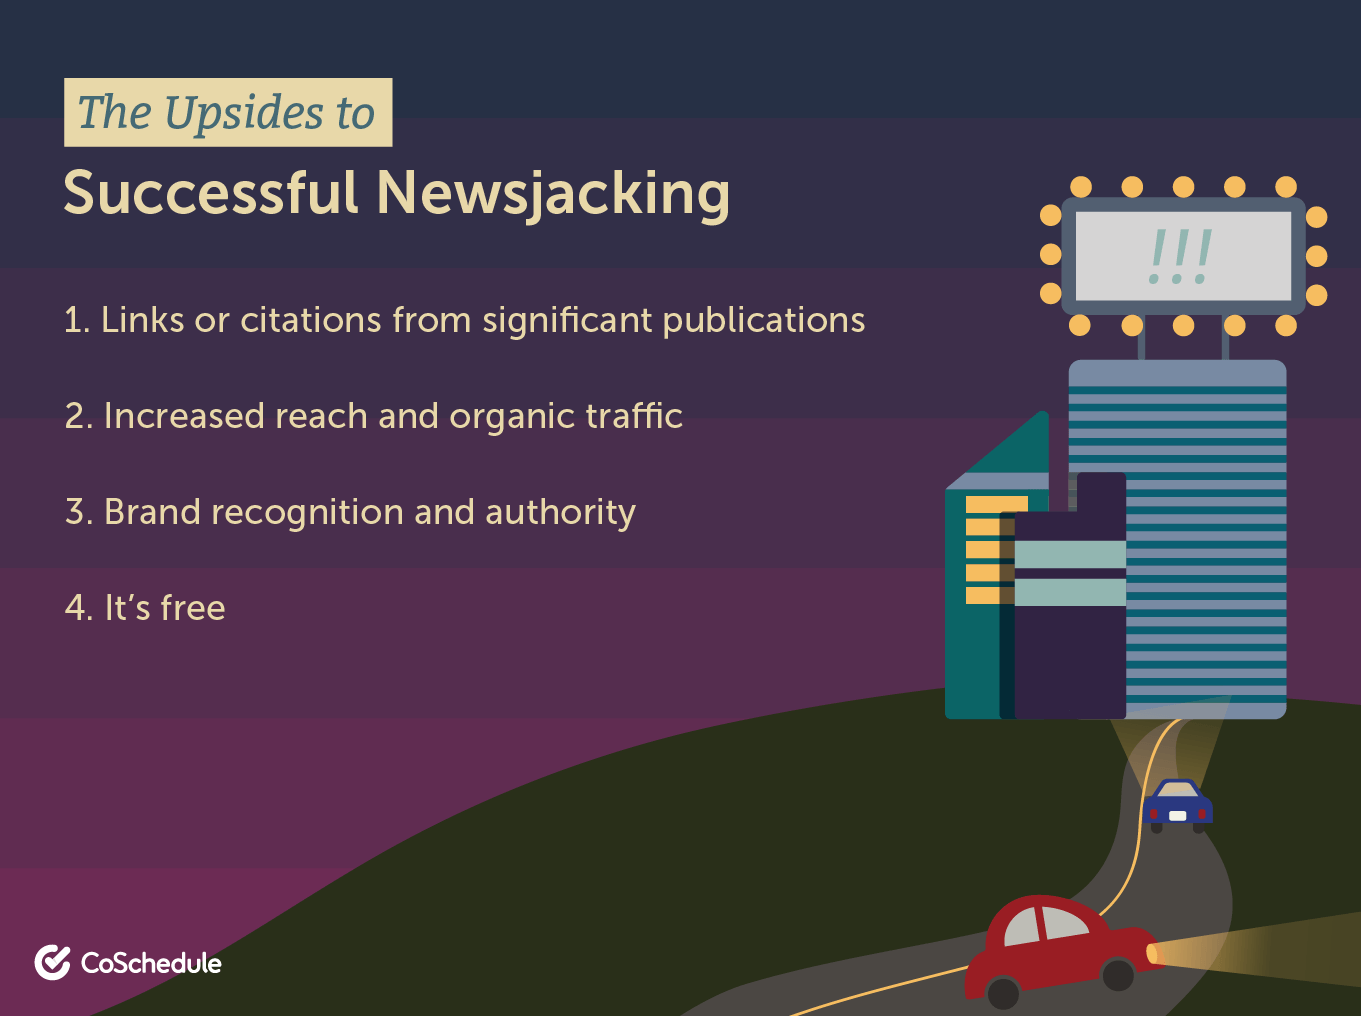 The upsides to successful newsjacking